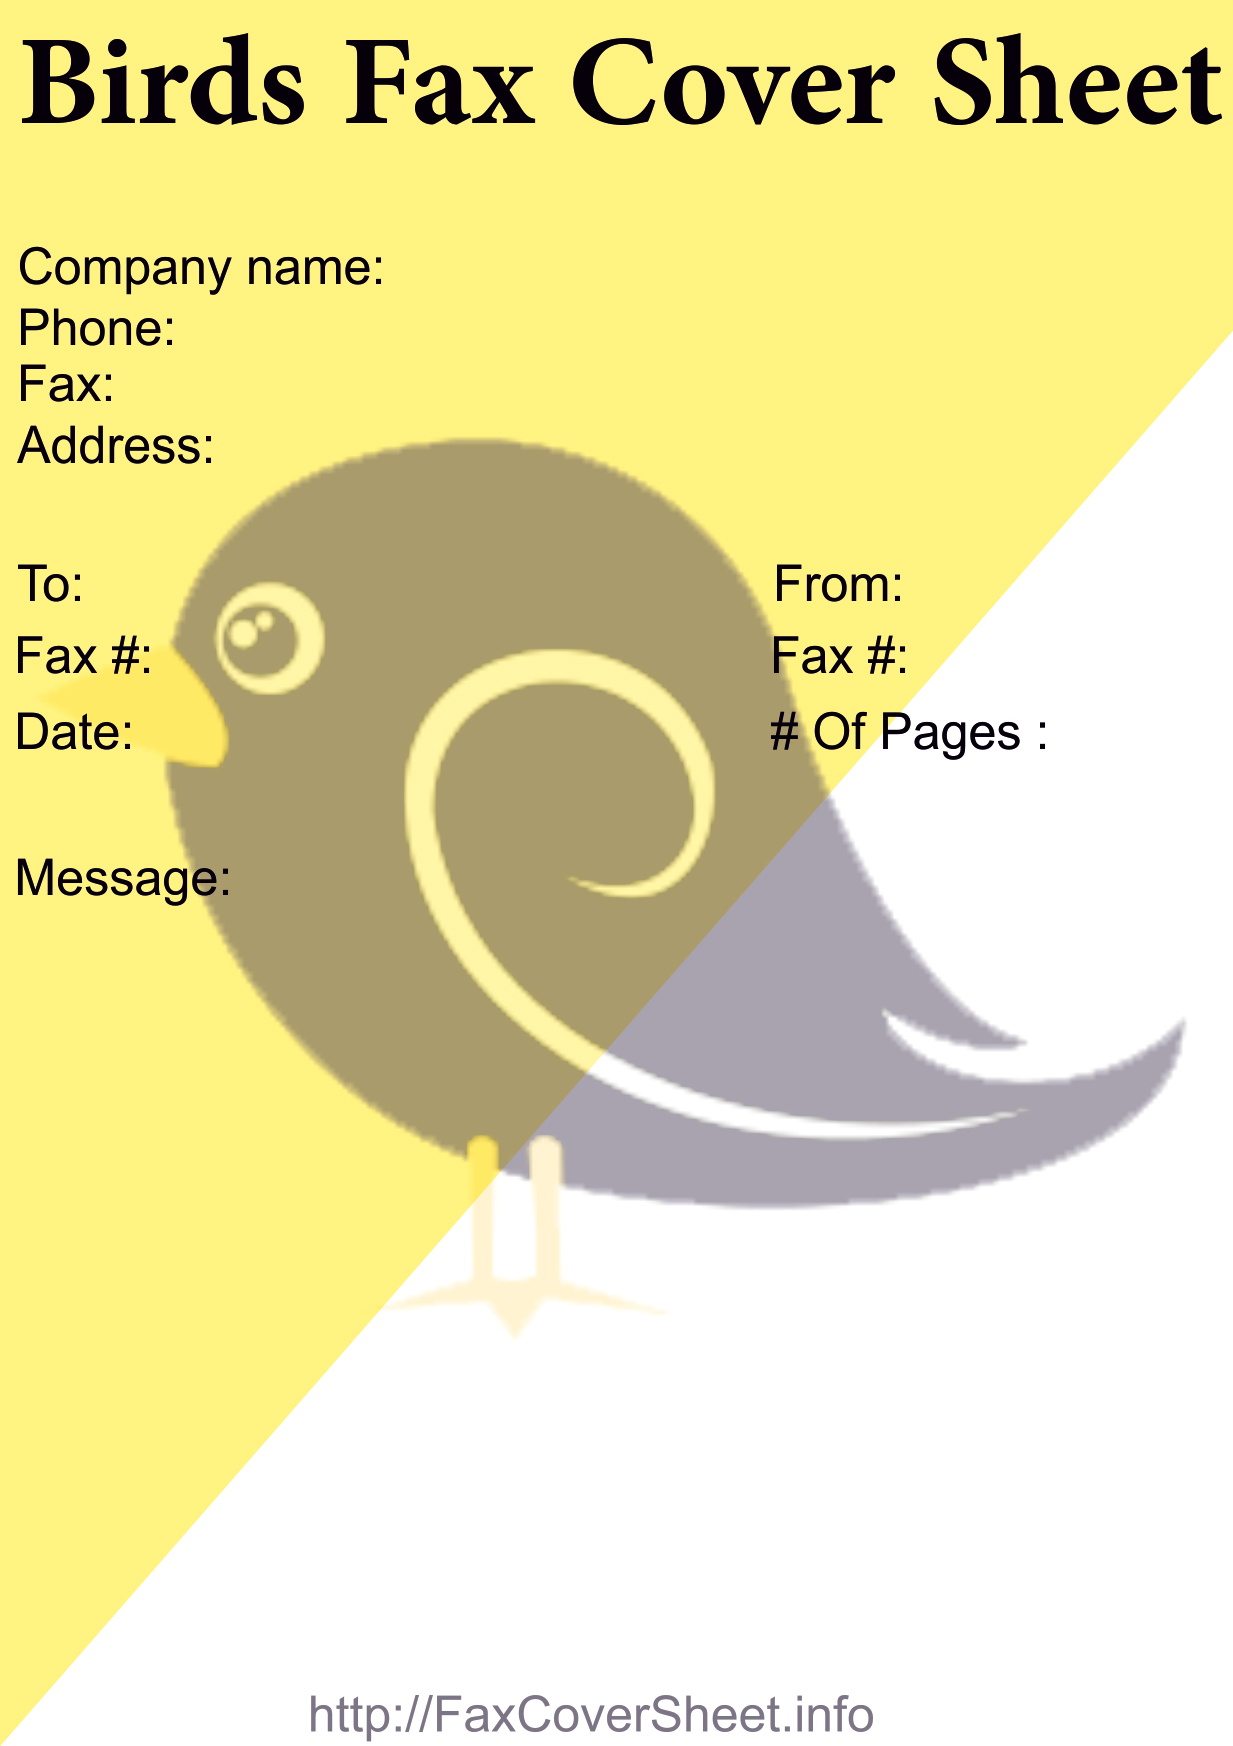 Download Birds Fax Cover Sheet